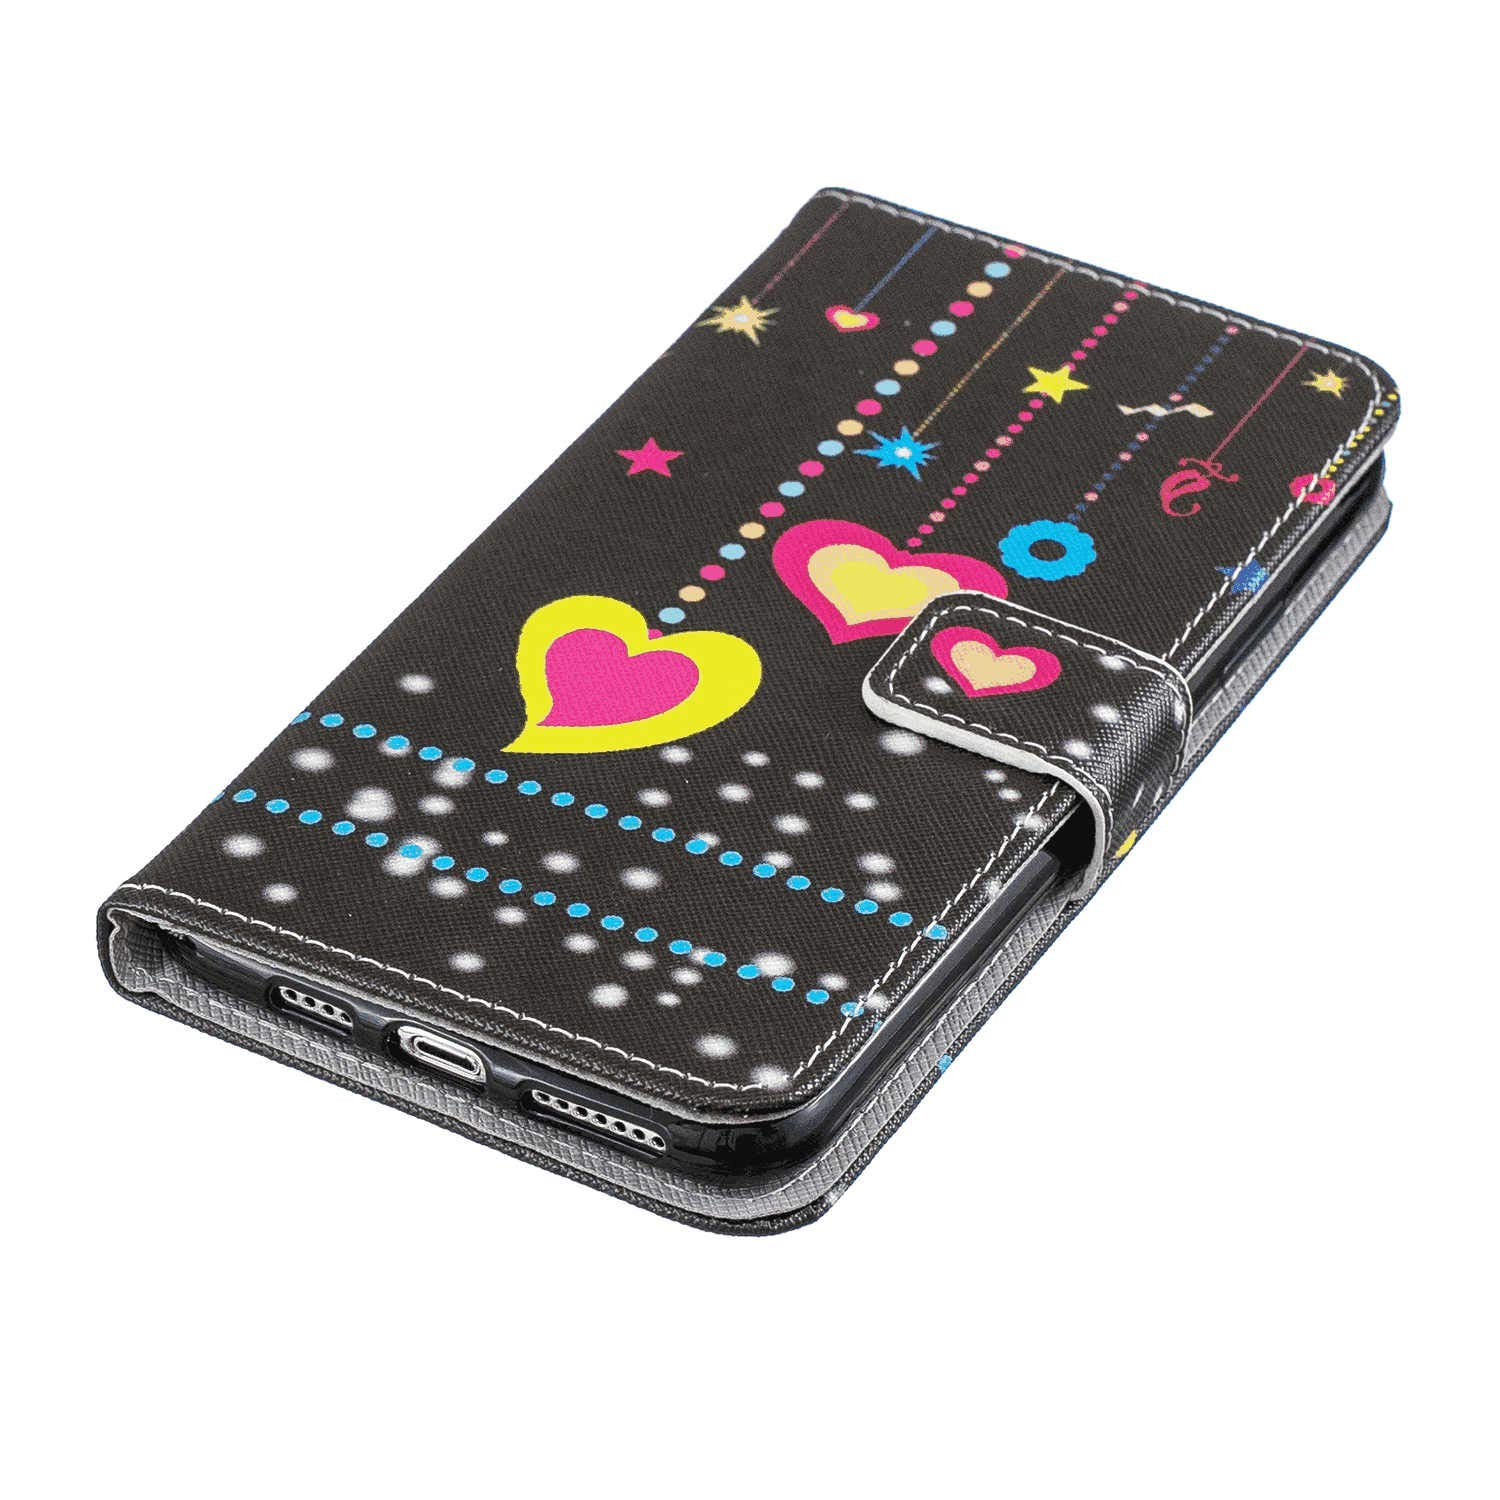 Leather Cover Business Gifts Wallet with Extra Waterproof Underwater Case Flip Case for Huawei P20 LITE